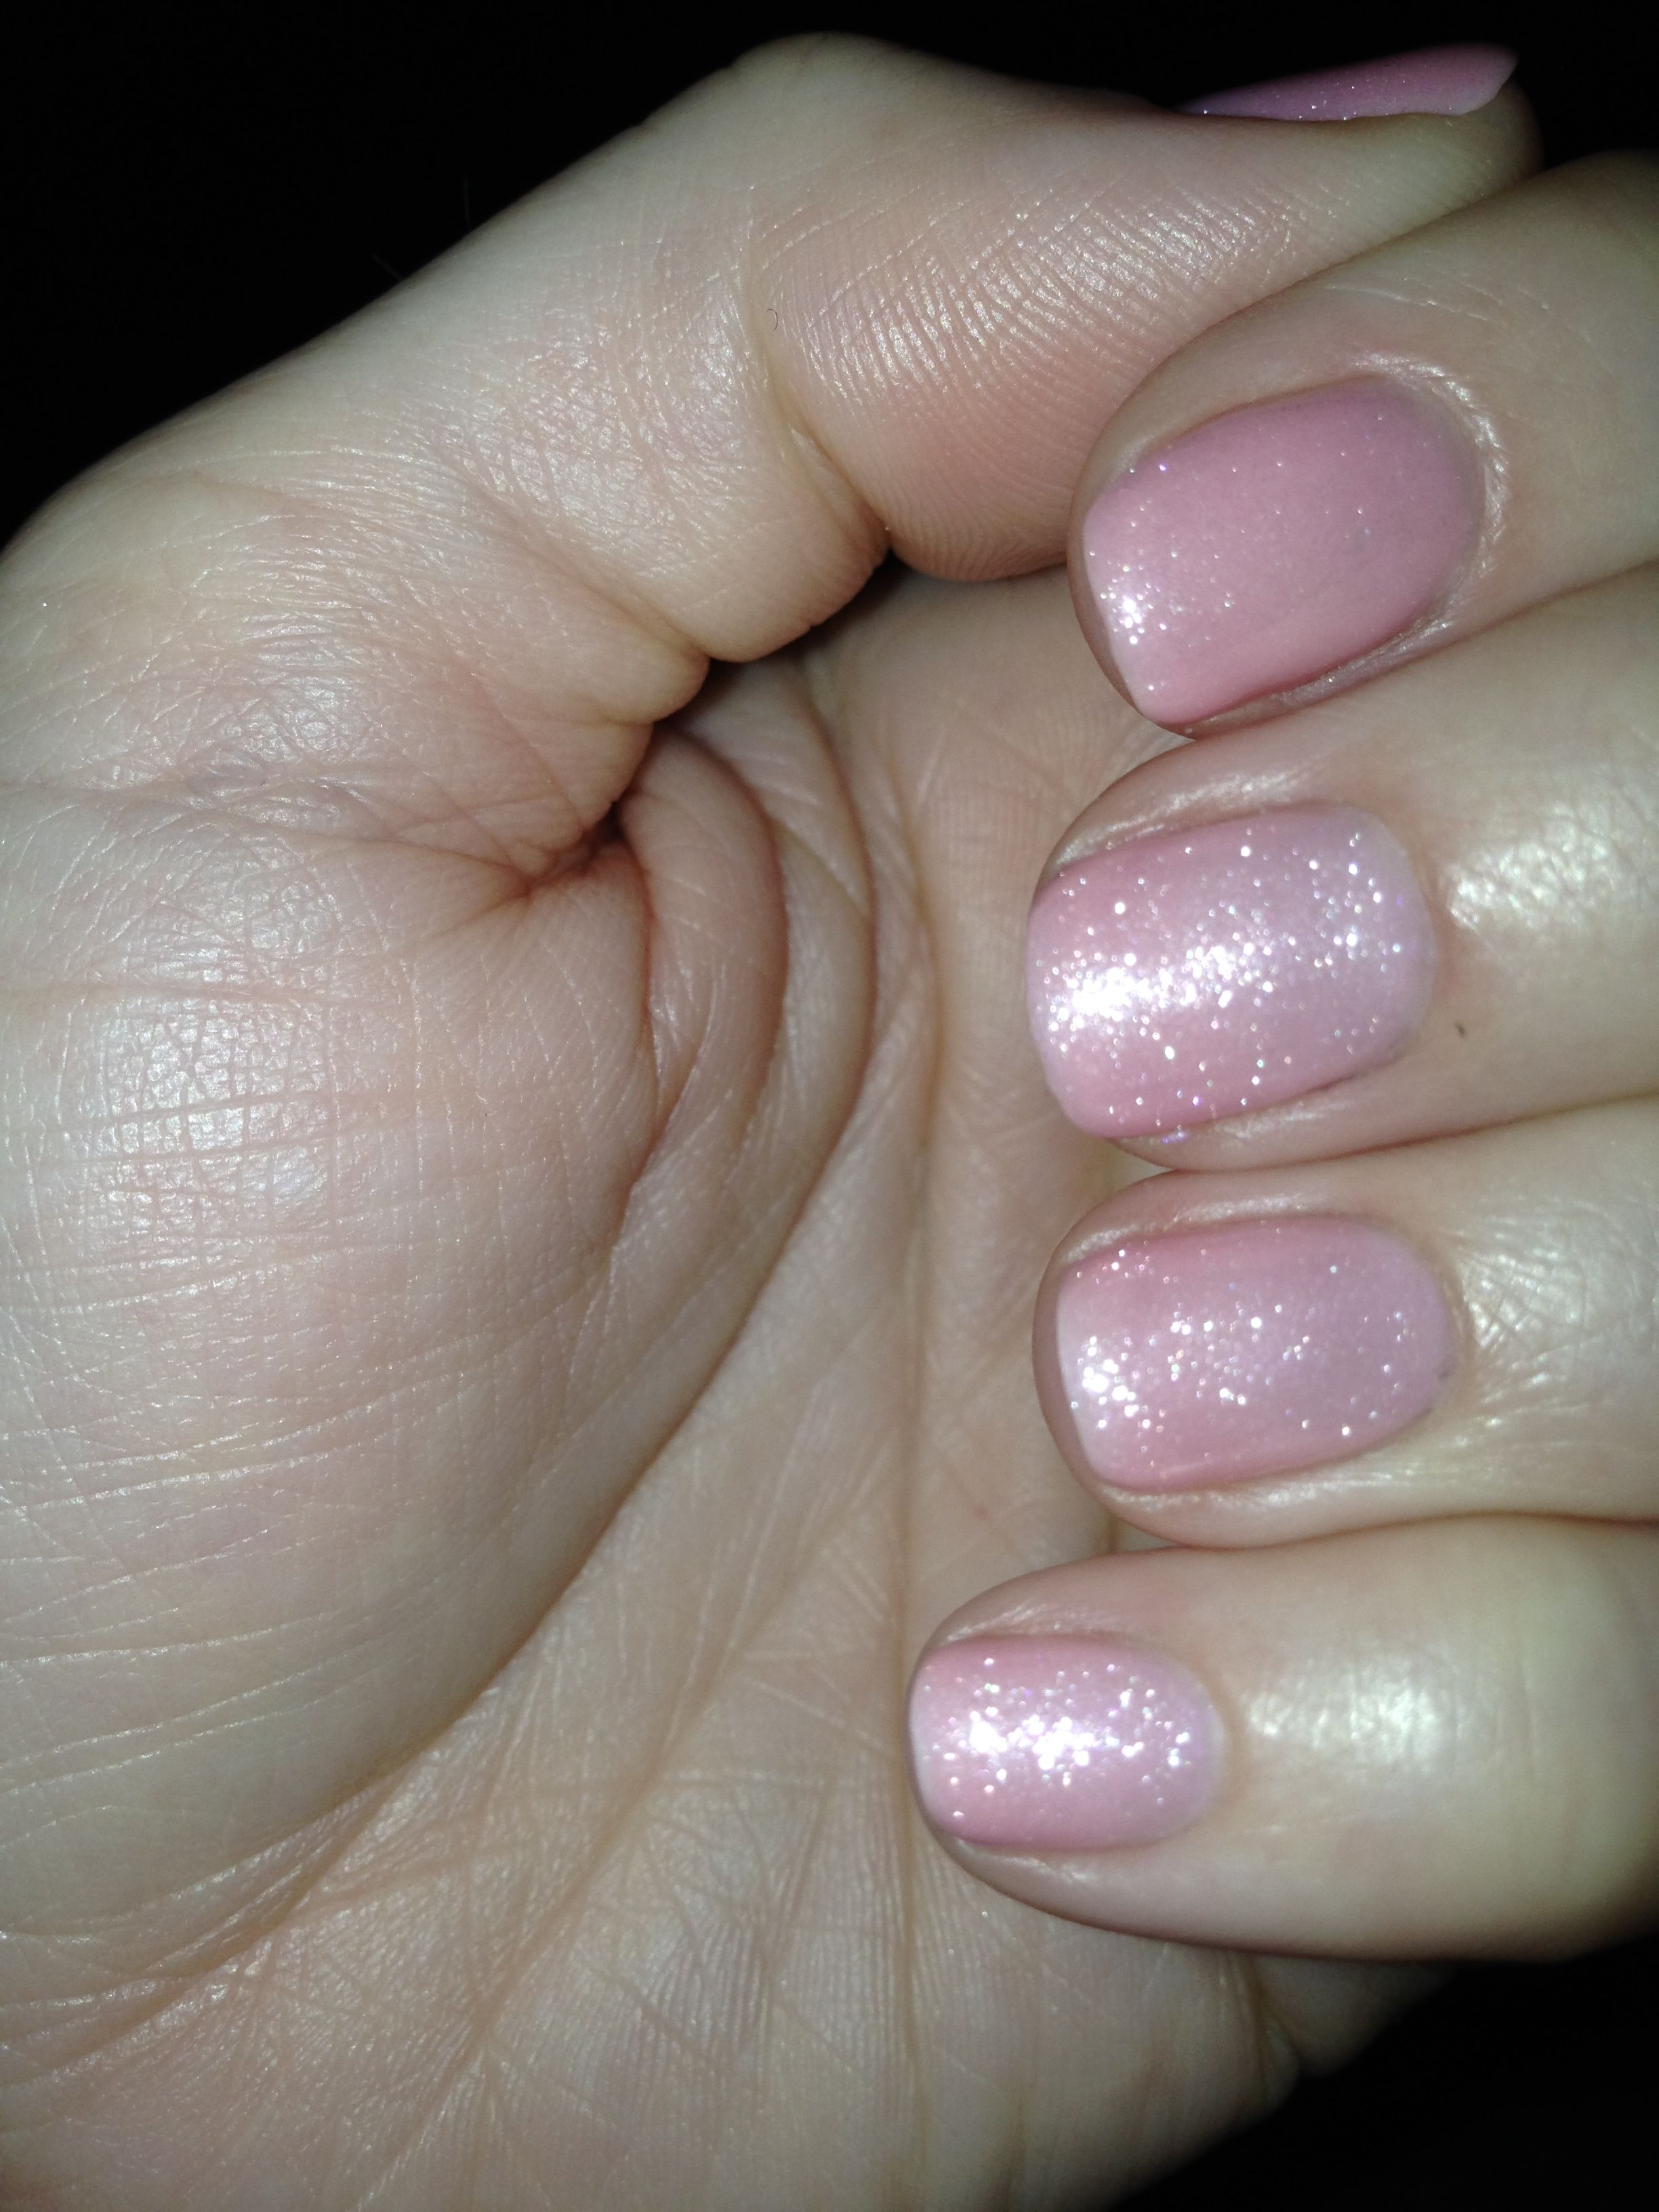 Cnd Shellac Color Blush Teddy 1 Coat Layered With